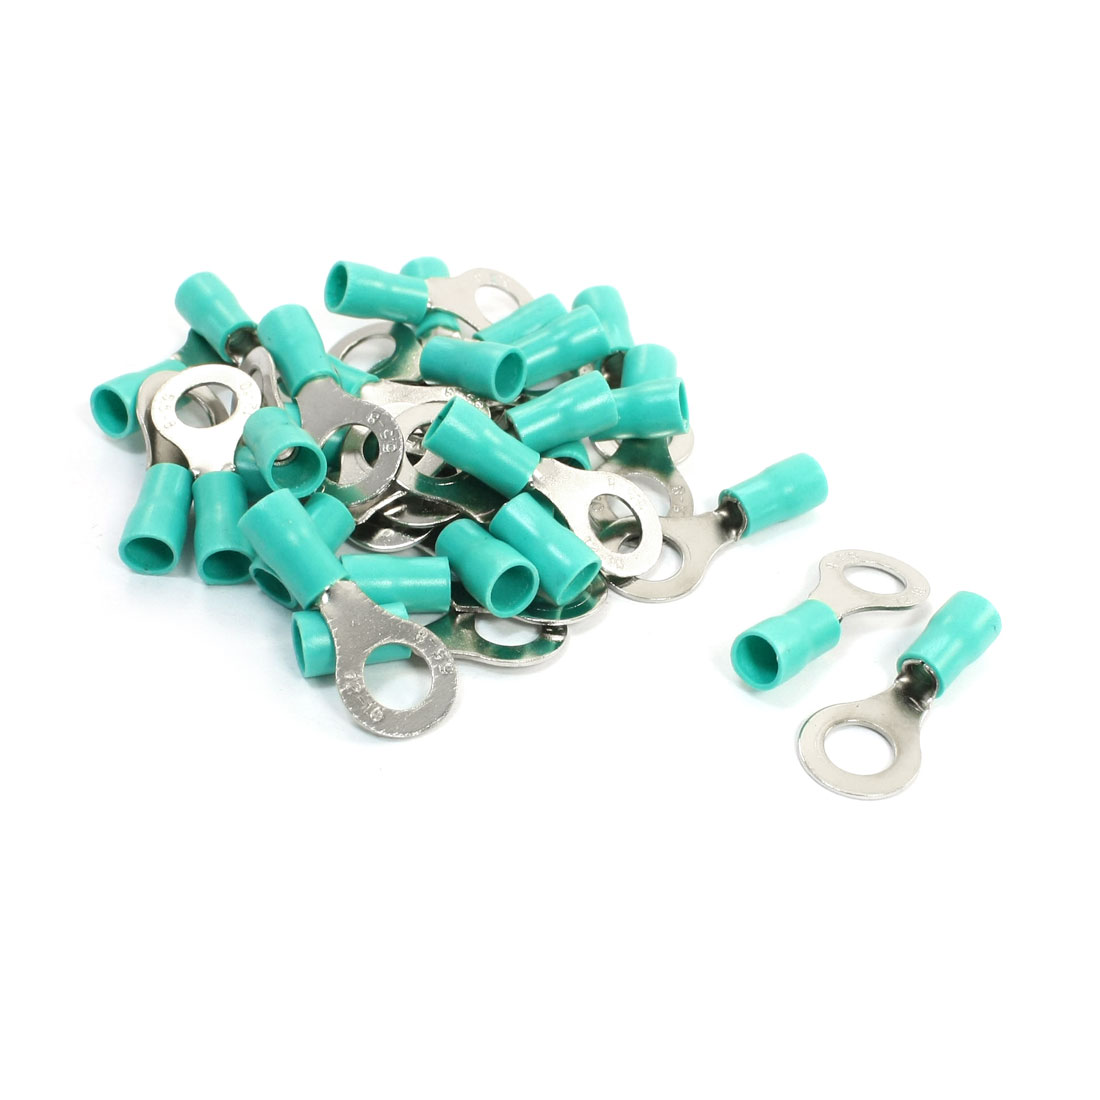 30PCS RV5.5-8 Green PVC Sleeve Pre Insulated Ring Terminals Connector AWG12-10